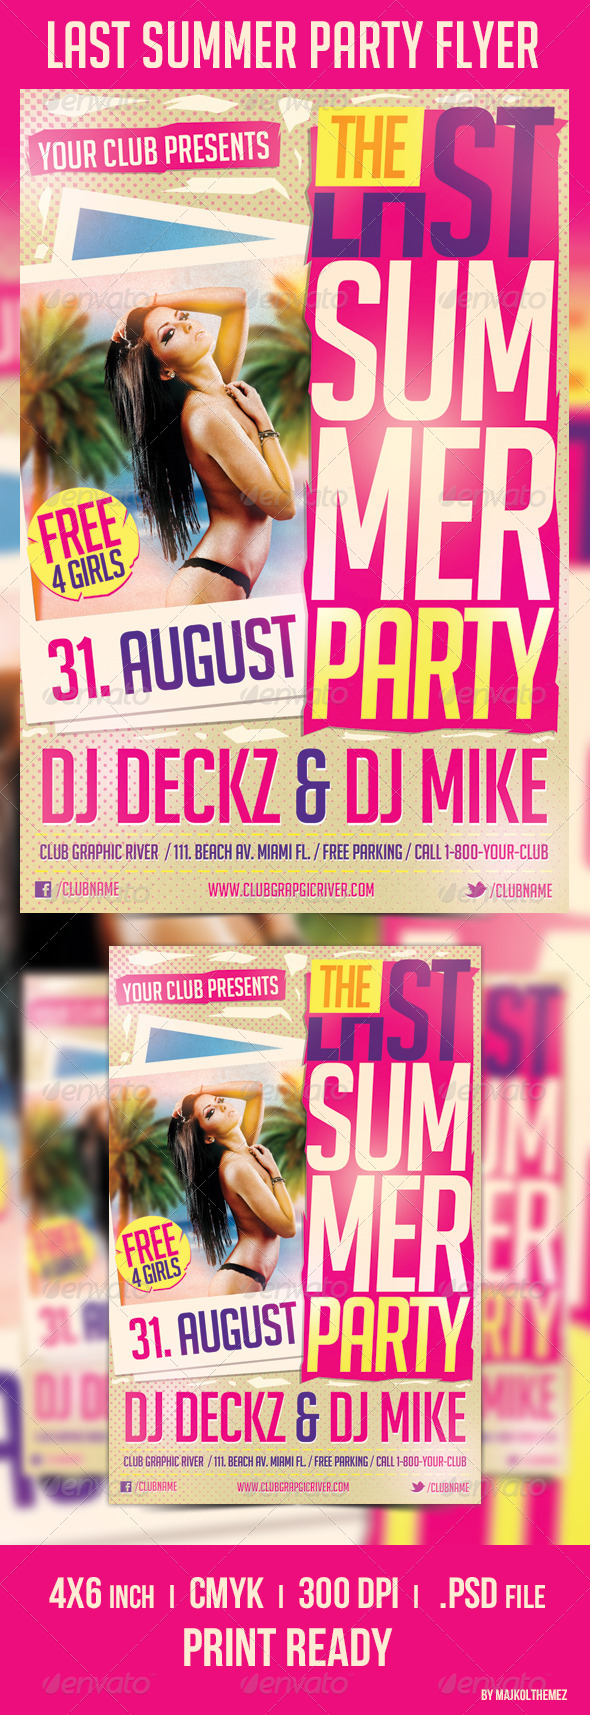 Last Summer Party Flyer Template - Clubs & Parties Events